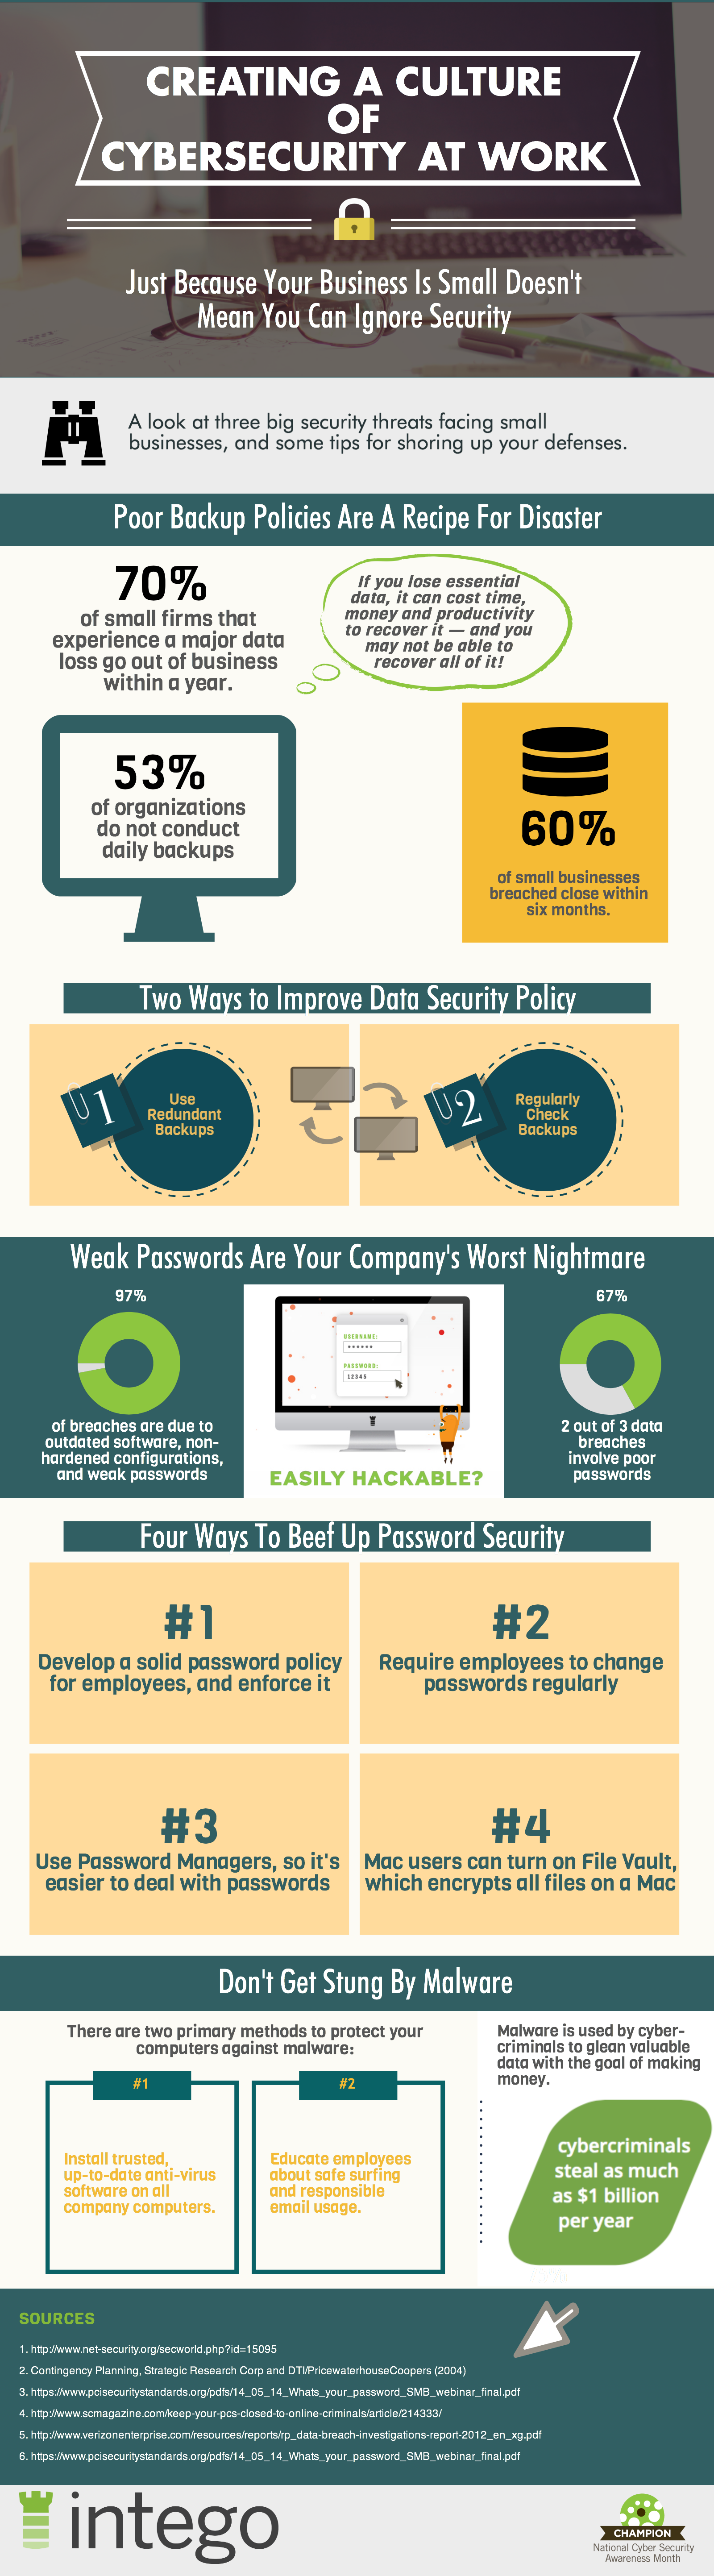 Creating a Culture of Cybersecurity at Work - Infographic